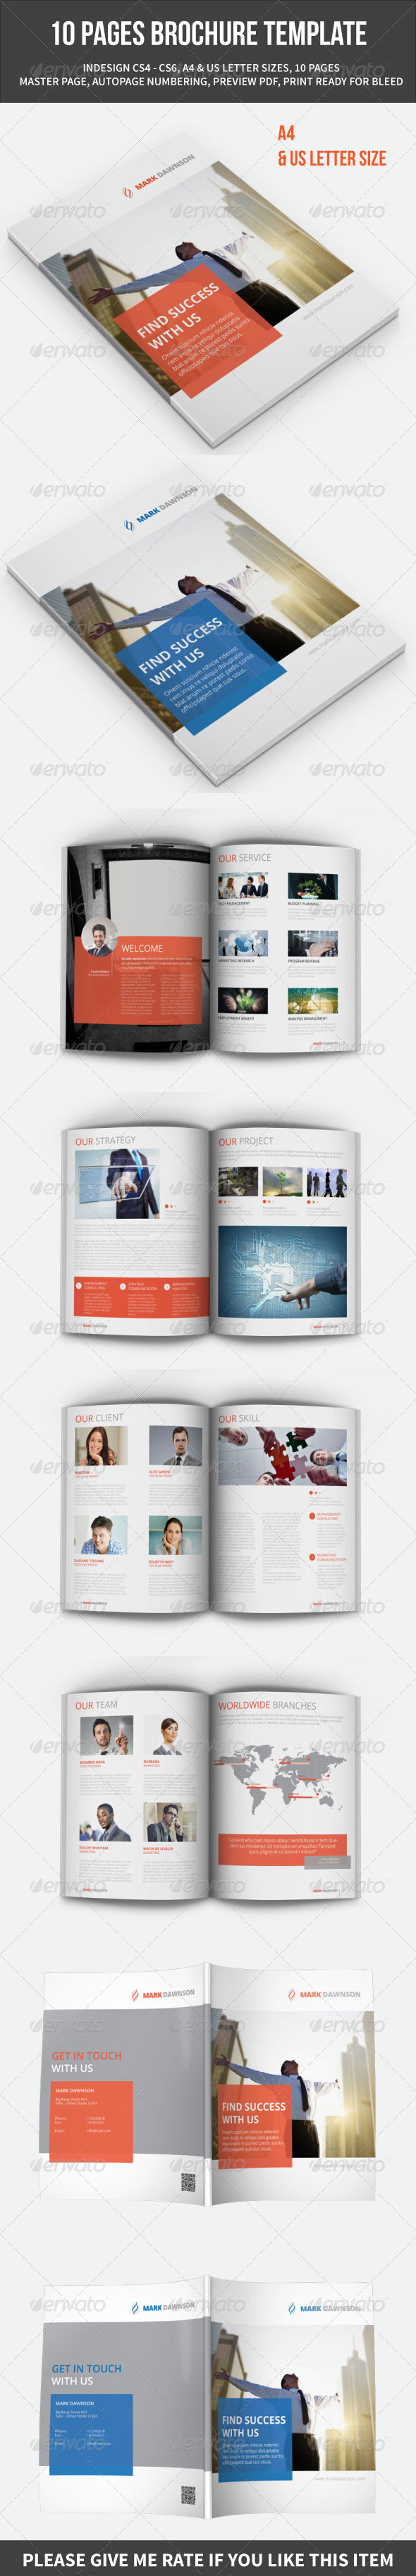 10 PAGES BROCHURE TEMPLATE - Informational Brochures